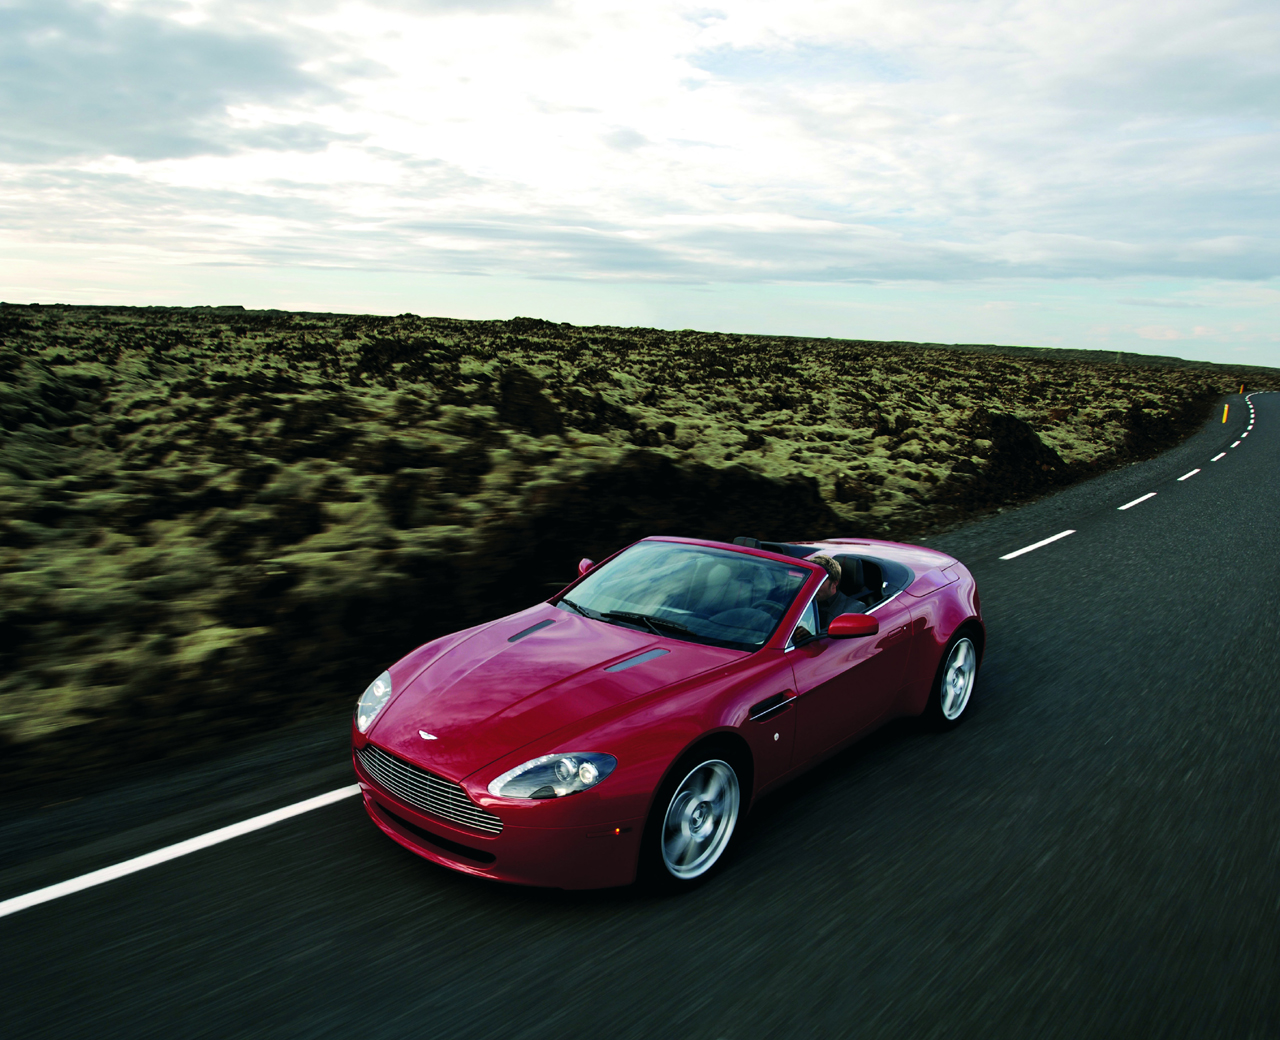 2007 aston-martin v8 vantage review - top speed